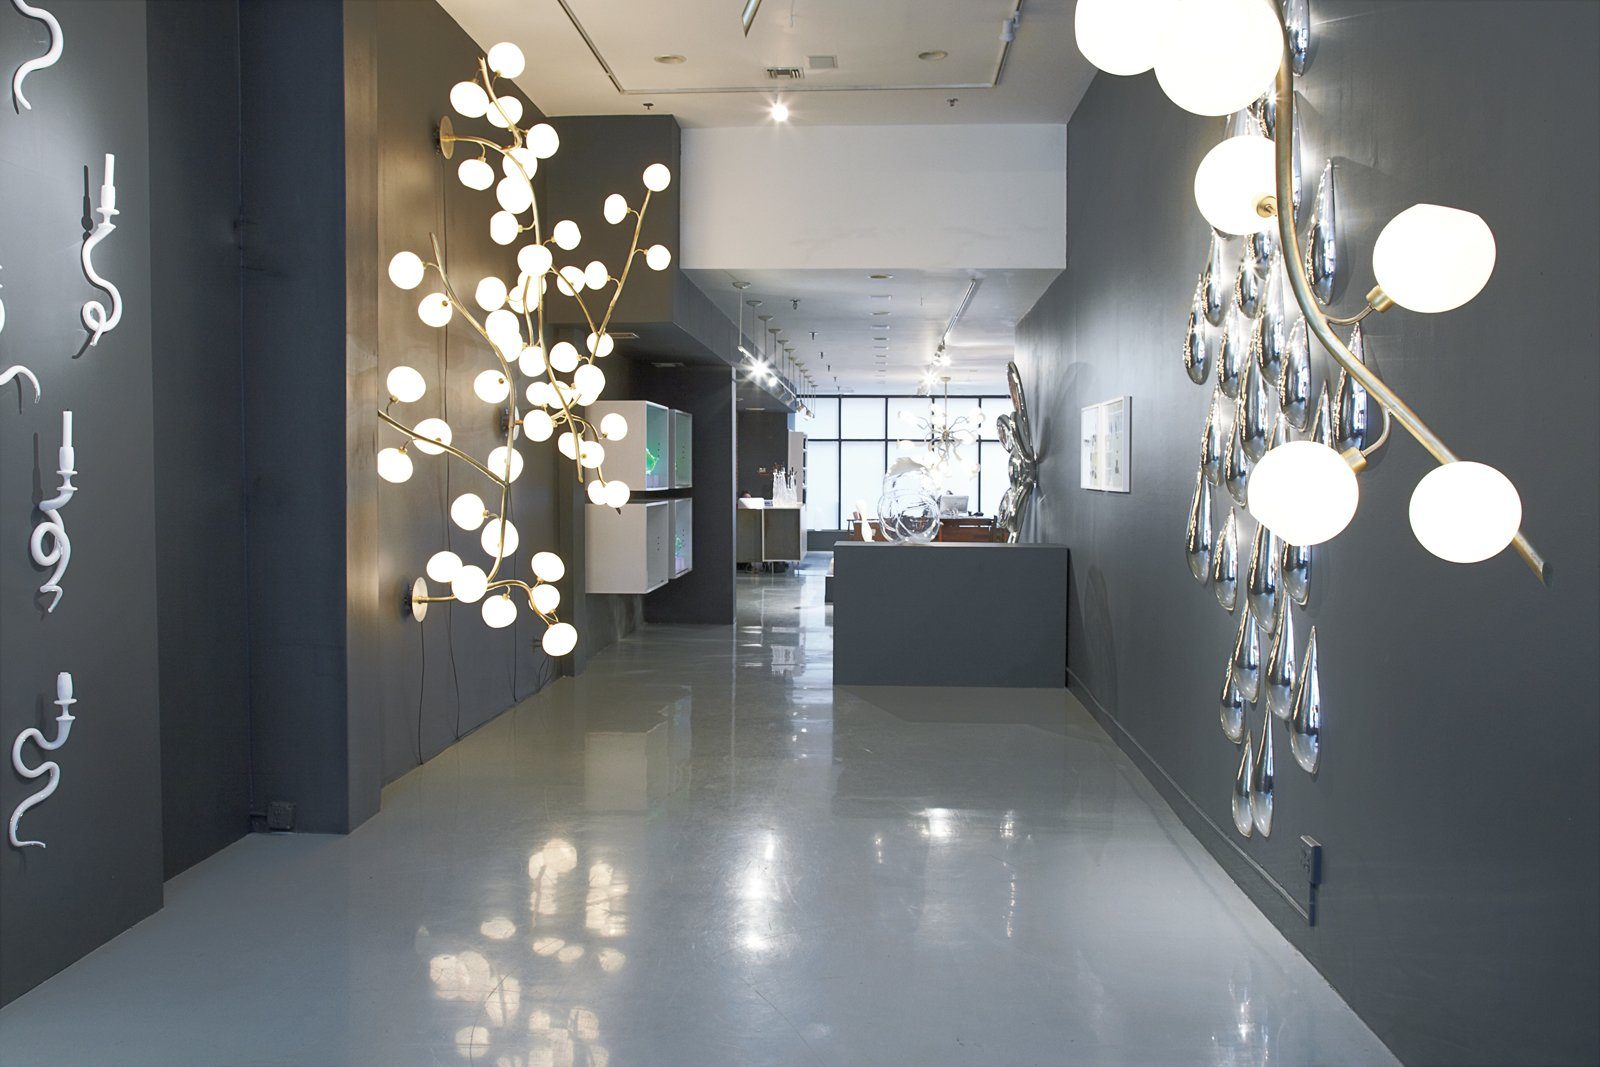 The Drawing With Glass exhibit featured handblown sculptures and illuminated fixtures inspired by nature and brought to life in organic shapes.  Revival of the Fittest by Jordan Kushins